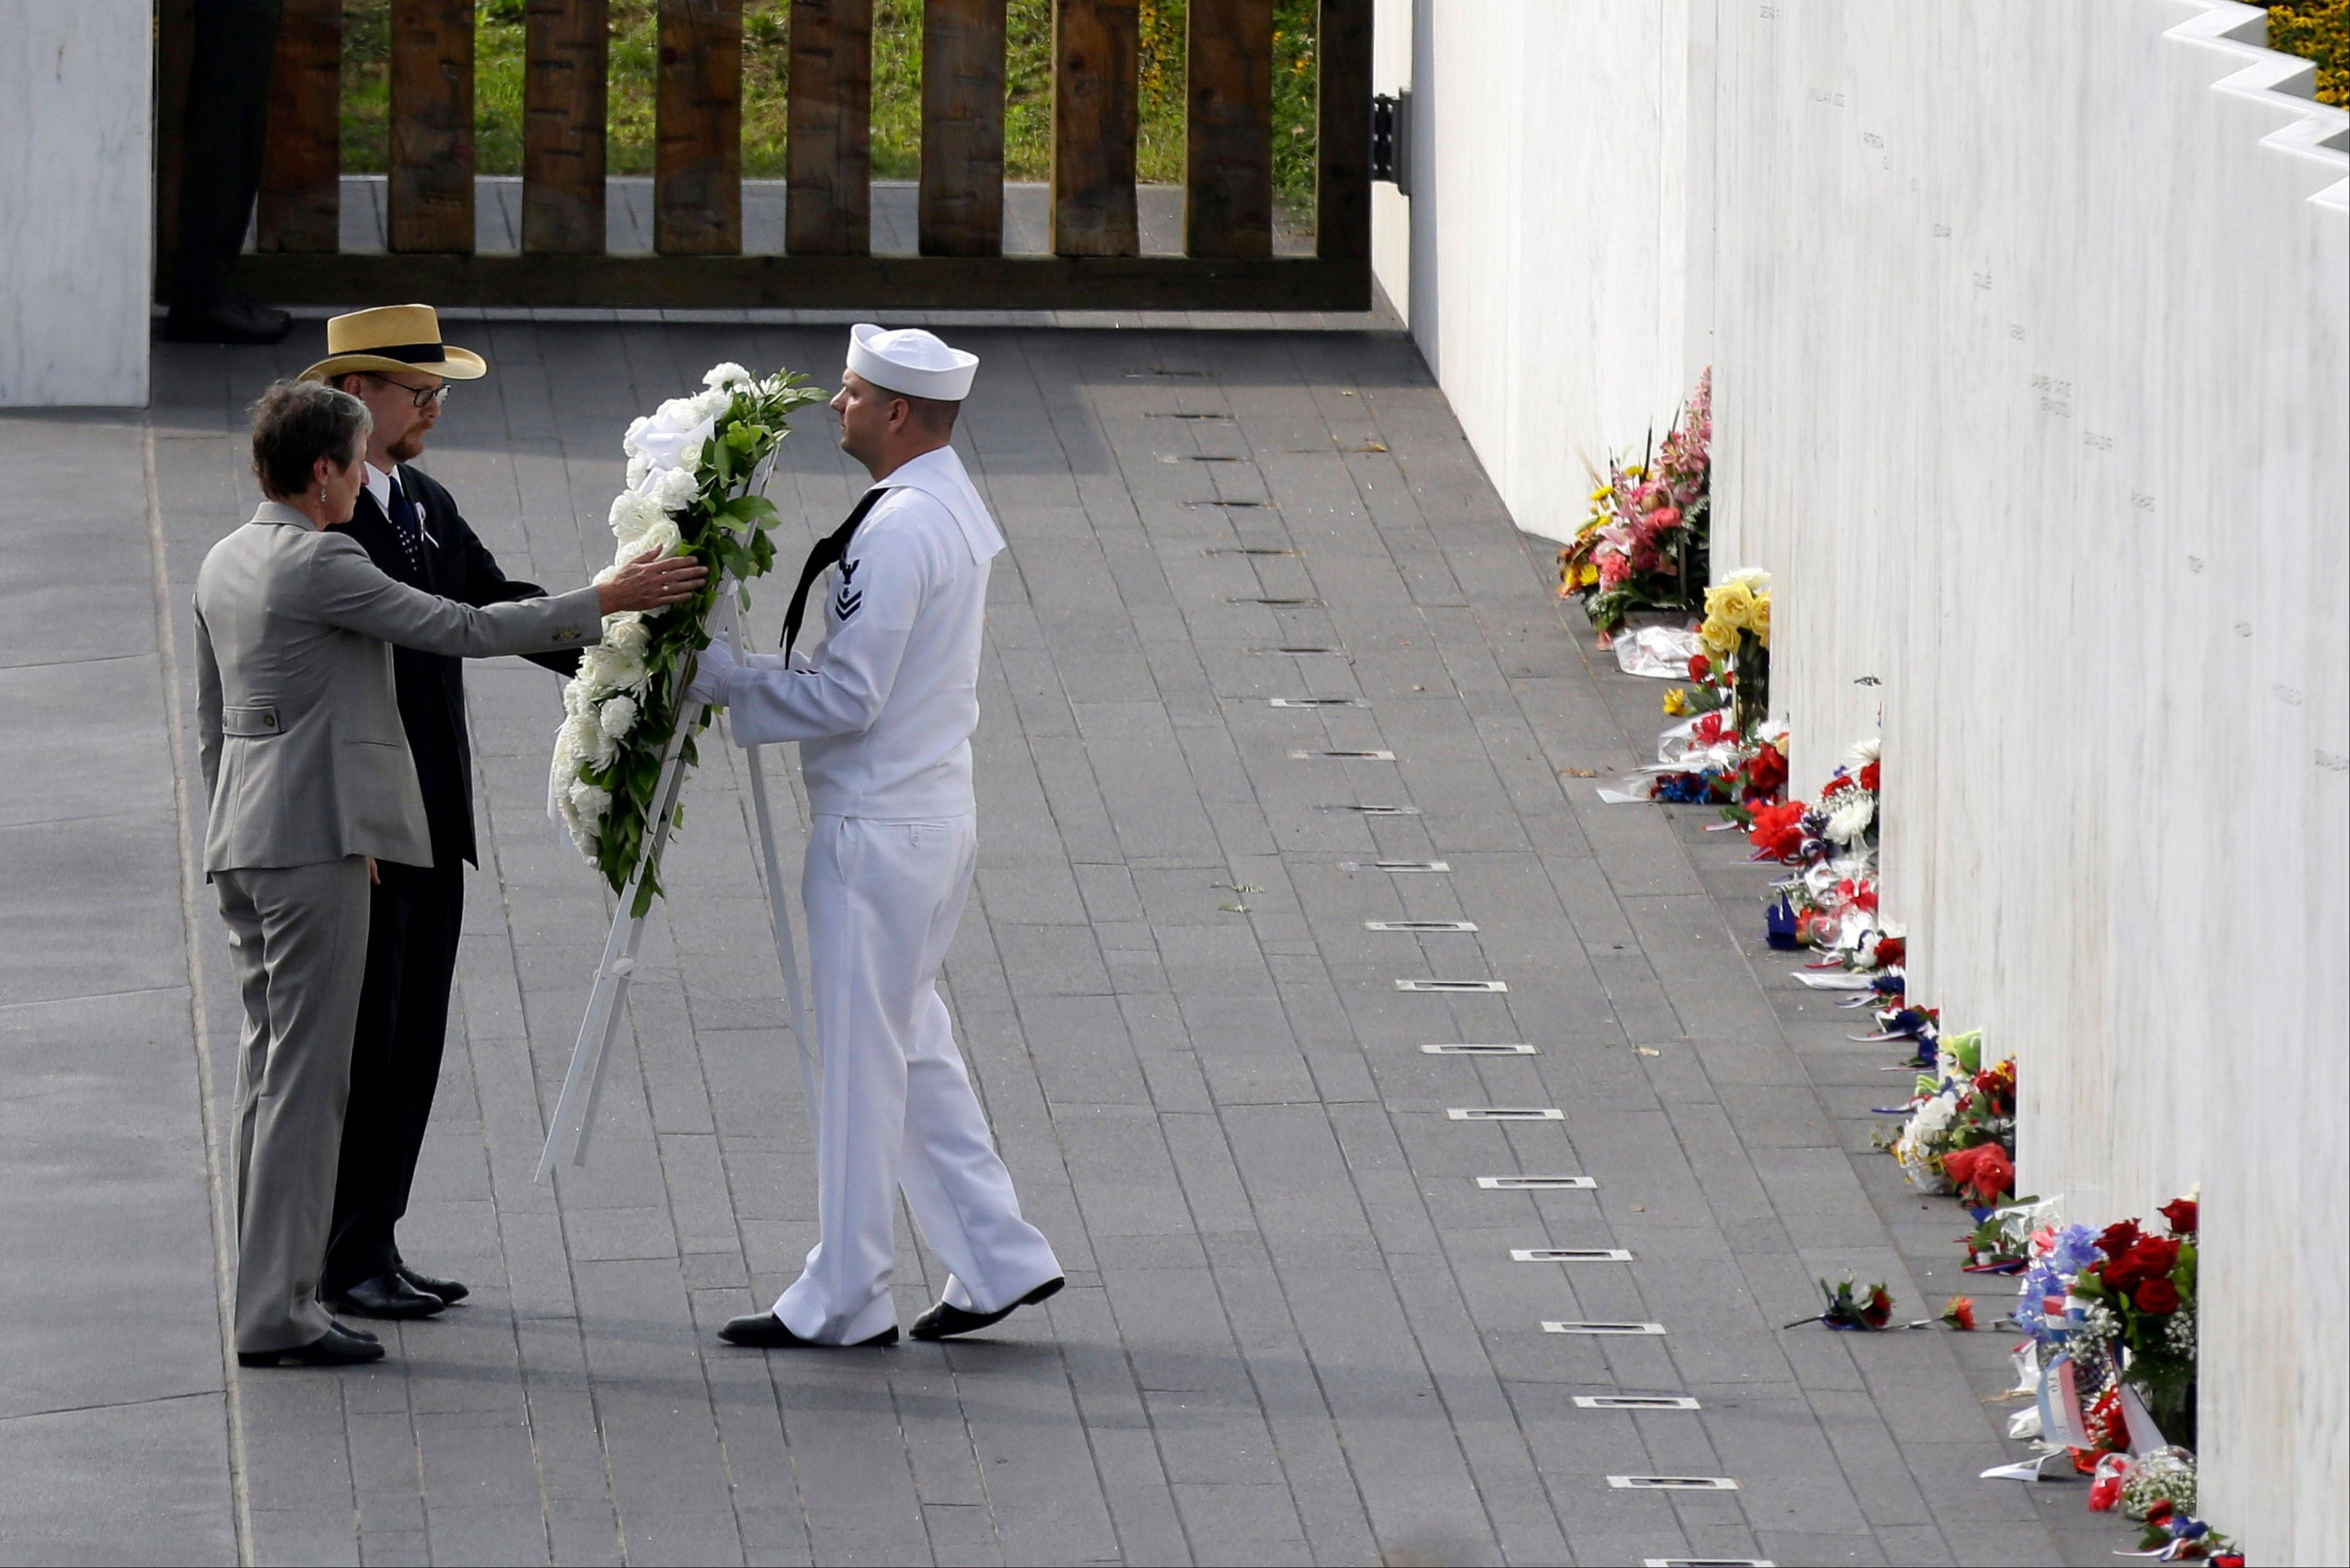 Secretary of the Interior Sally Jewell, left, and Gordon Felt, center, whose brother Edward P. Felt was a passenger on Flight 93, place a wreath with the help of Navy honor guard Matthew Konchan, of Johnstown, Pa., in front of the wall containing the names of the 40 crew and passengers on Flight 93 at the Flight 93 National Memorial on Wednesday, Sept. 11, 2013 in Shanksville.